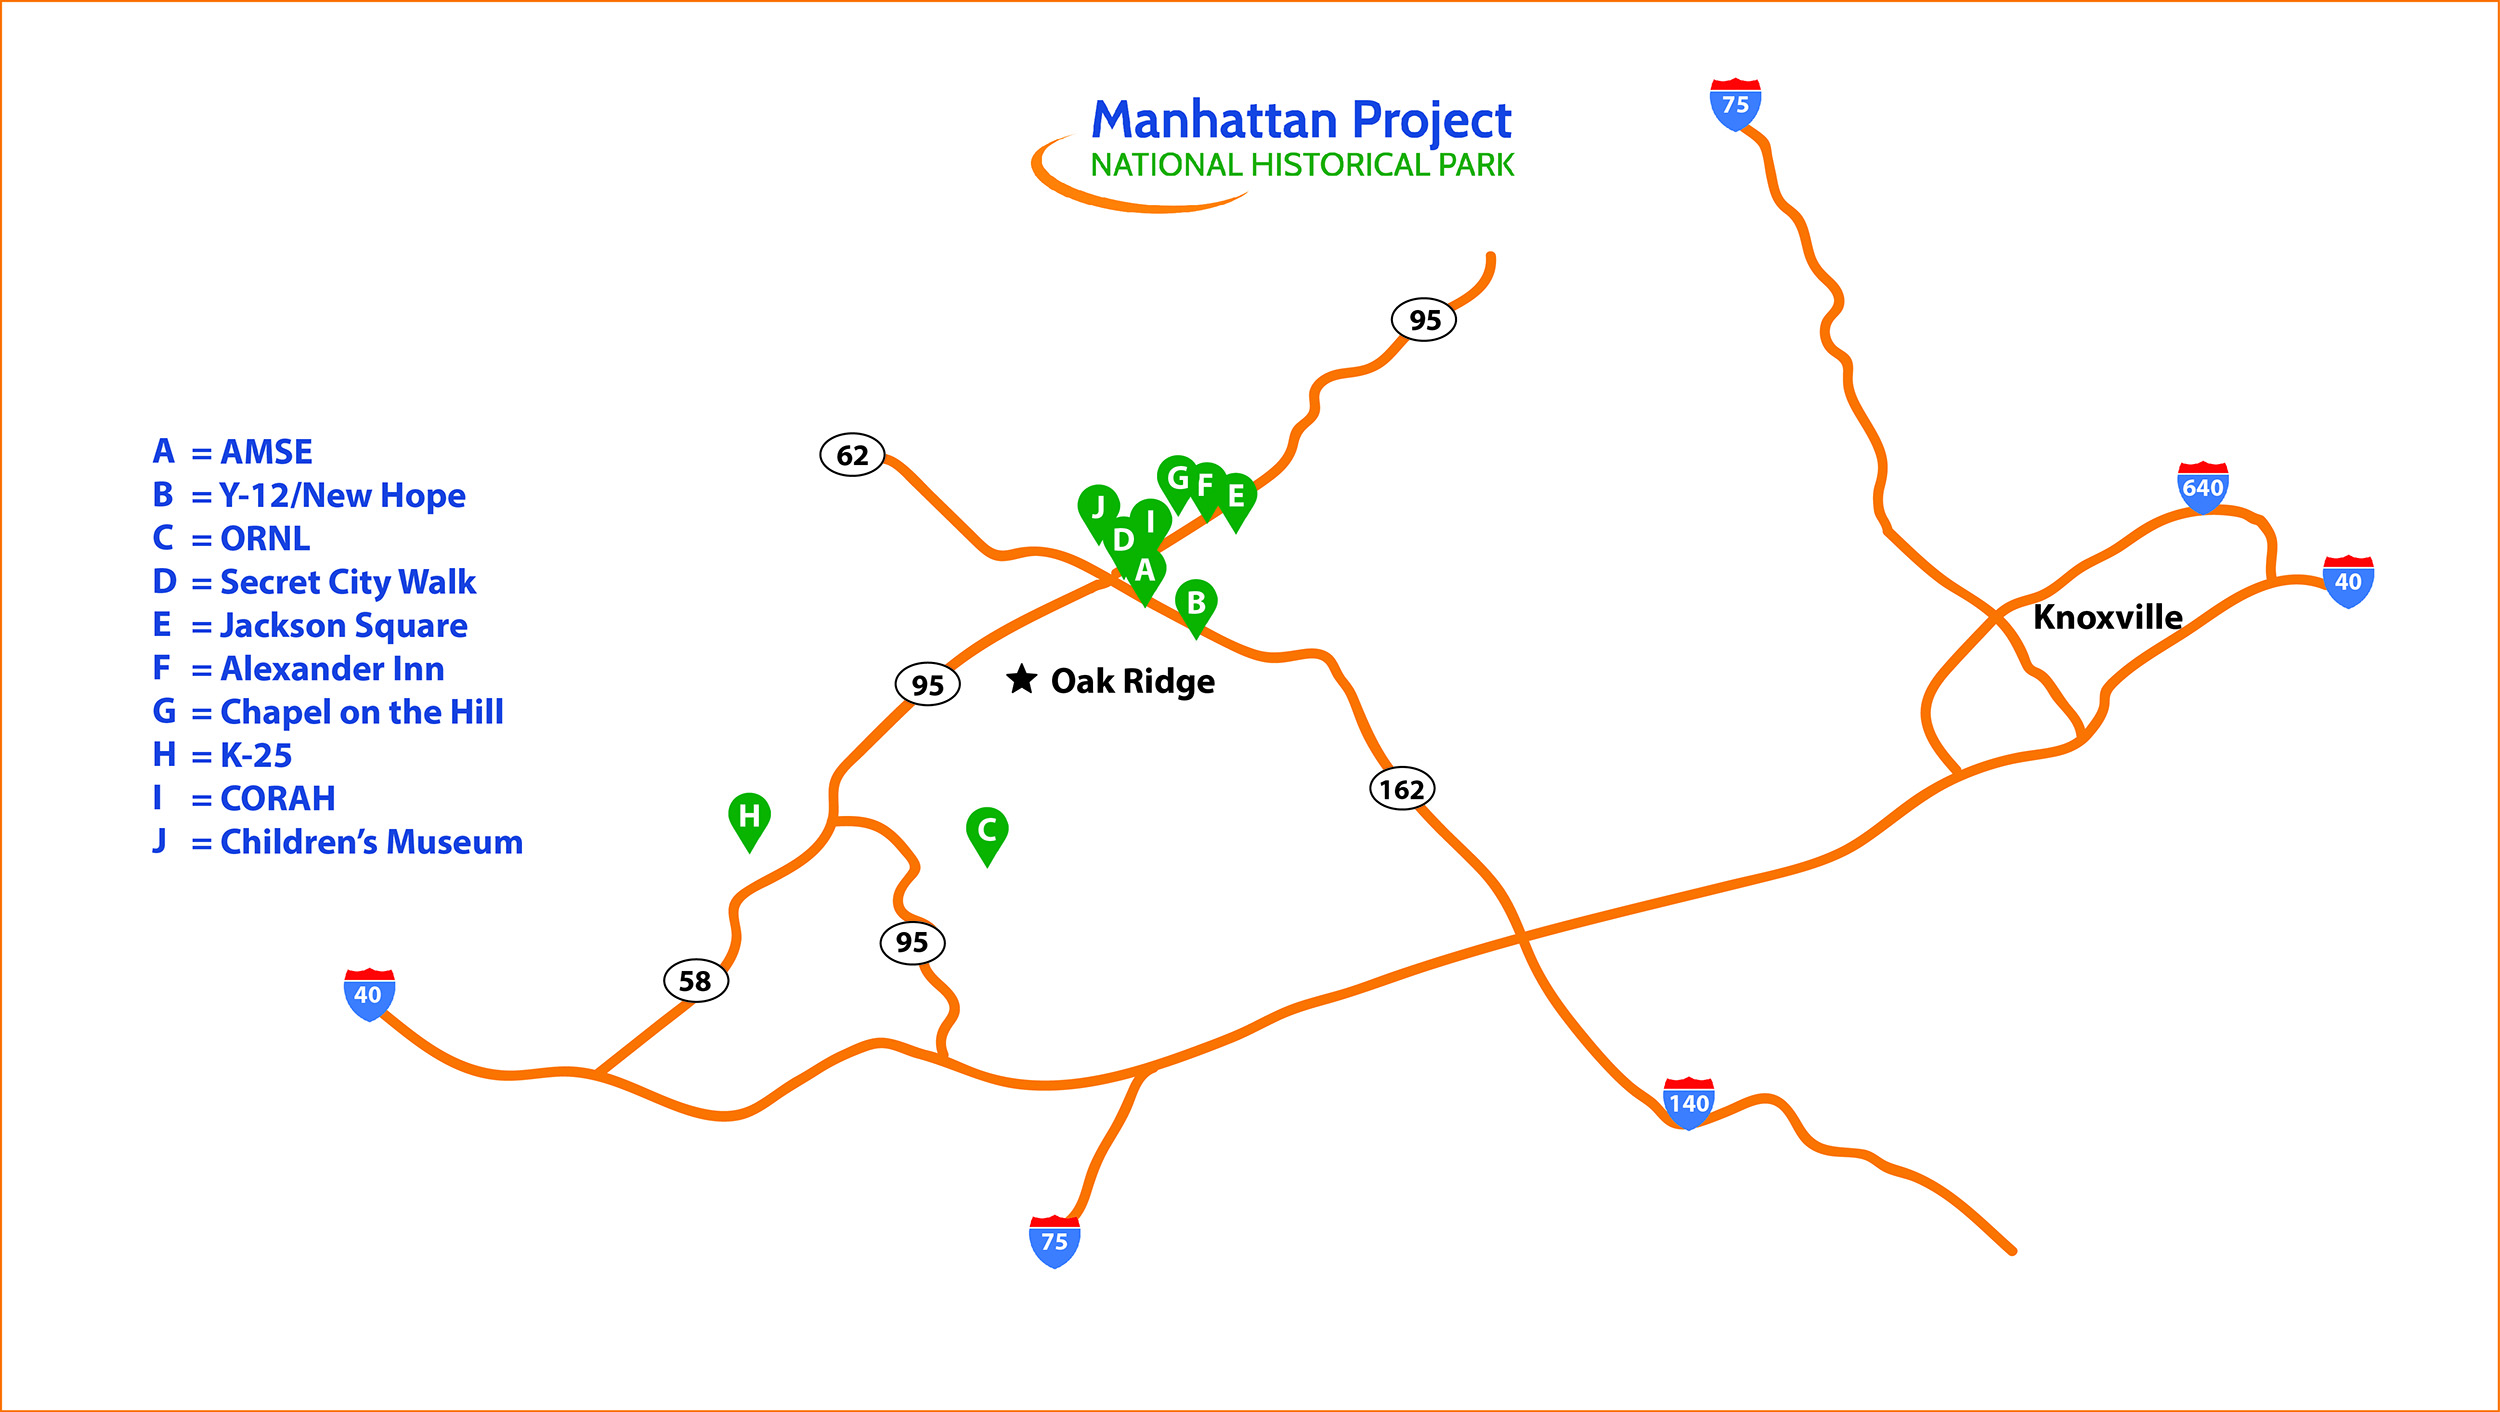 manhattan project map